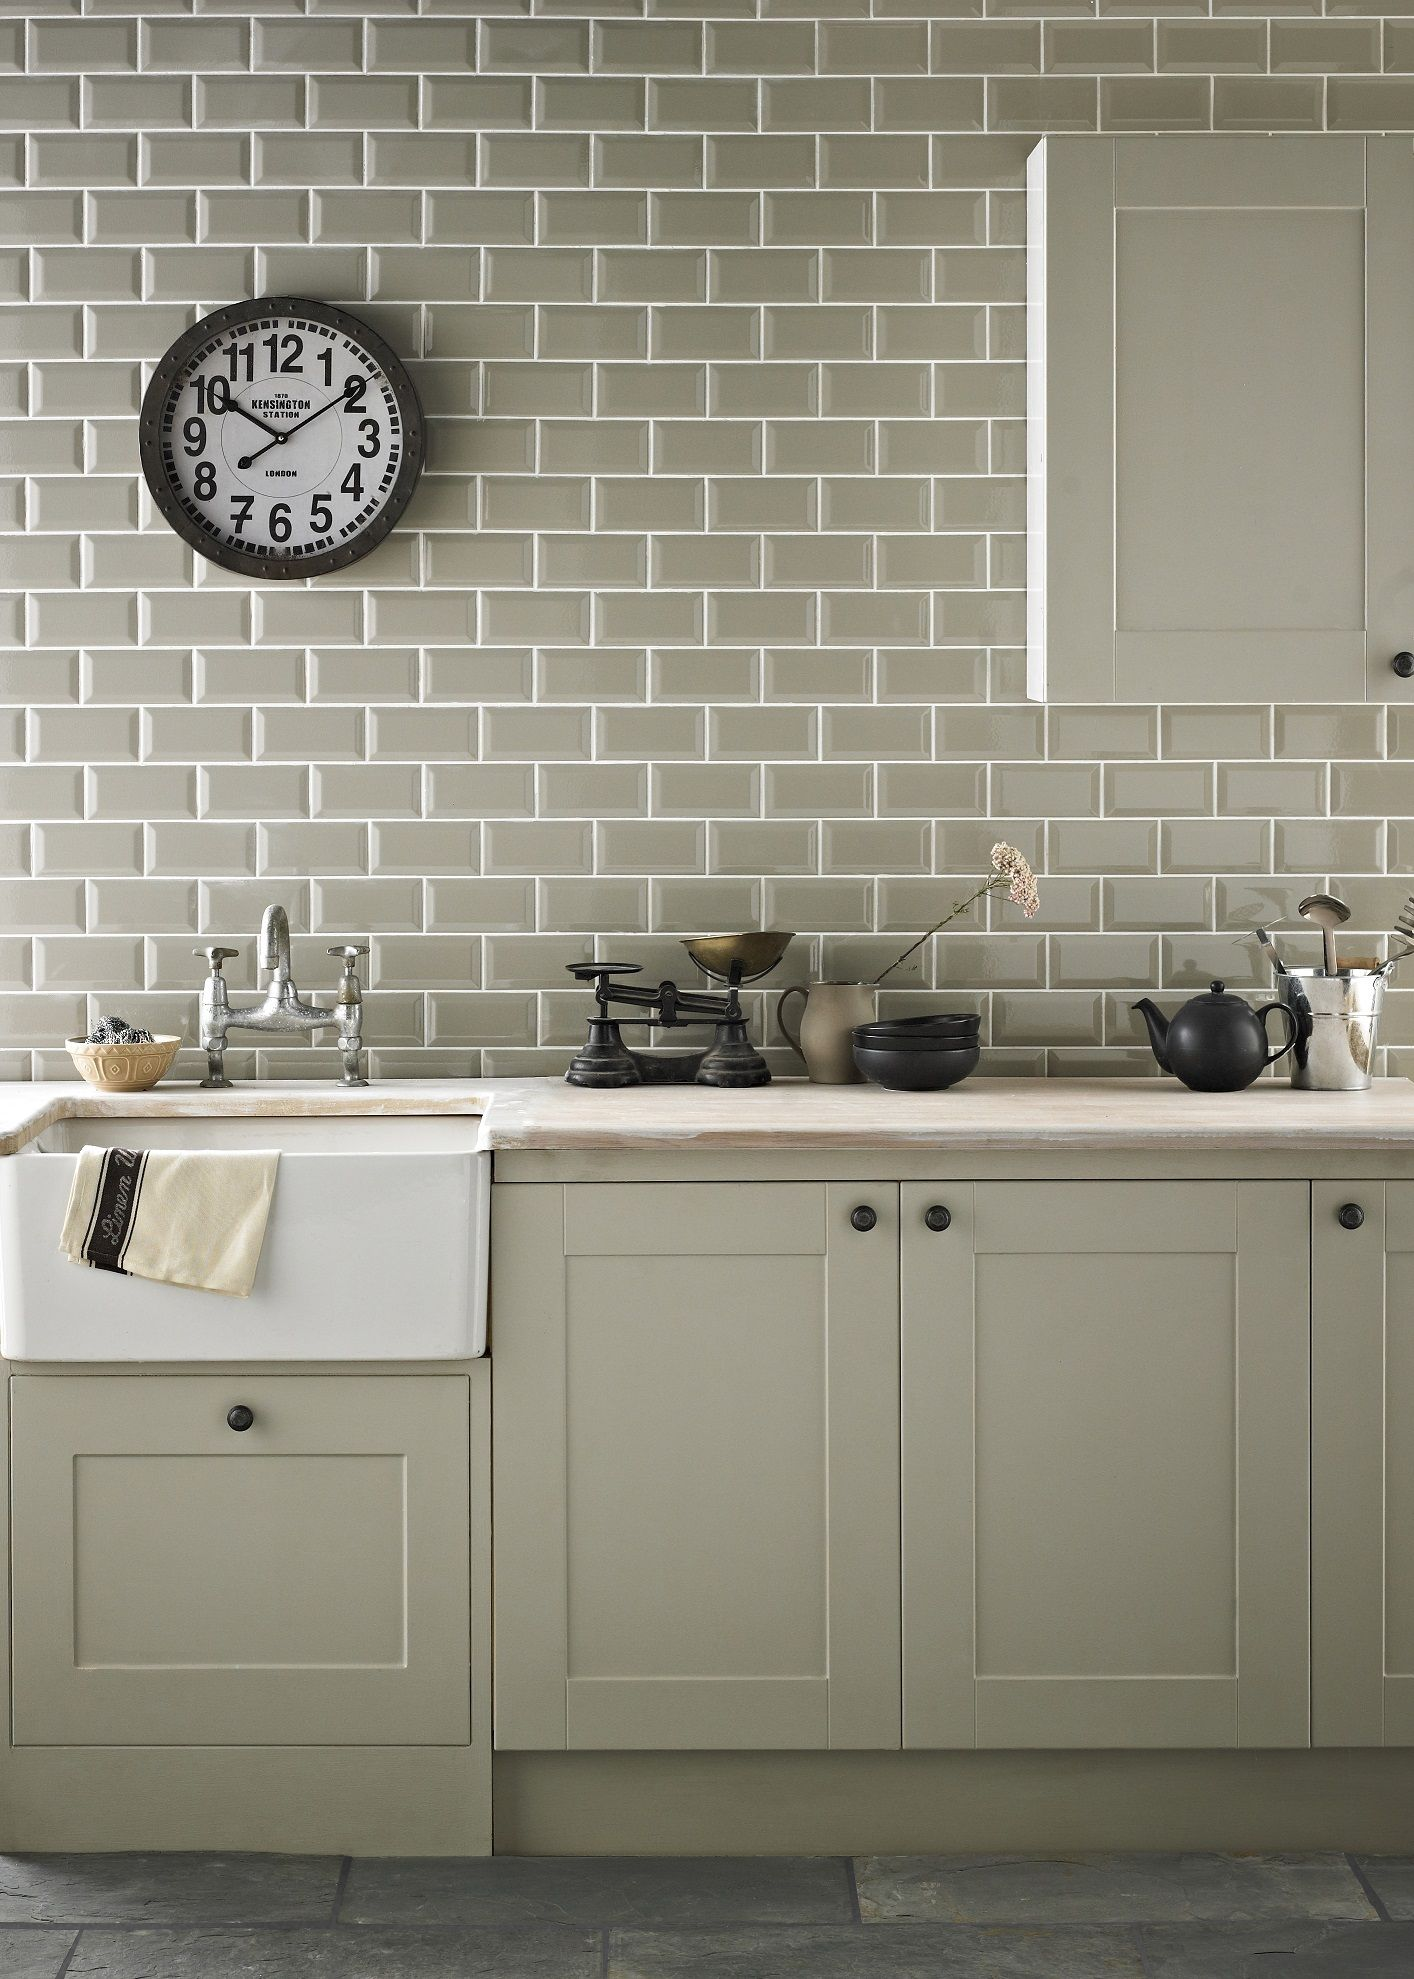 Wall Tiles For Kitchen Chartwell Sage With Cabinets Ideas For The House Pinterest